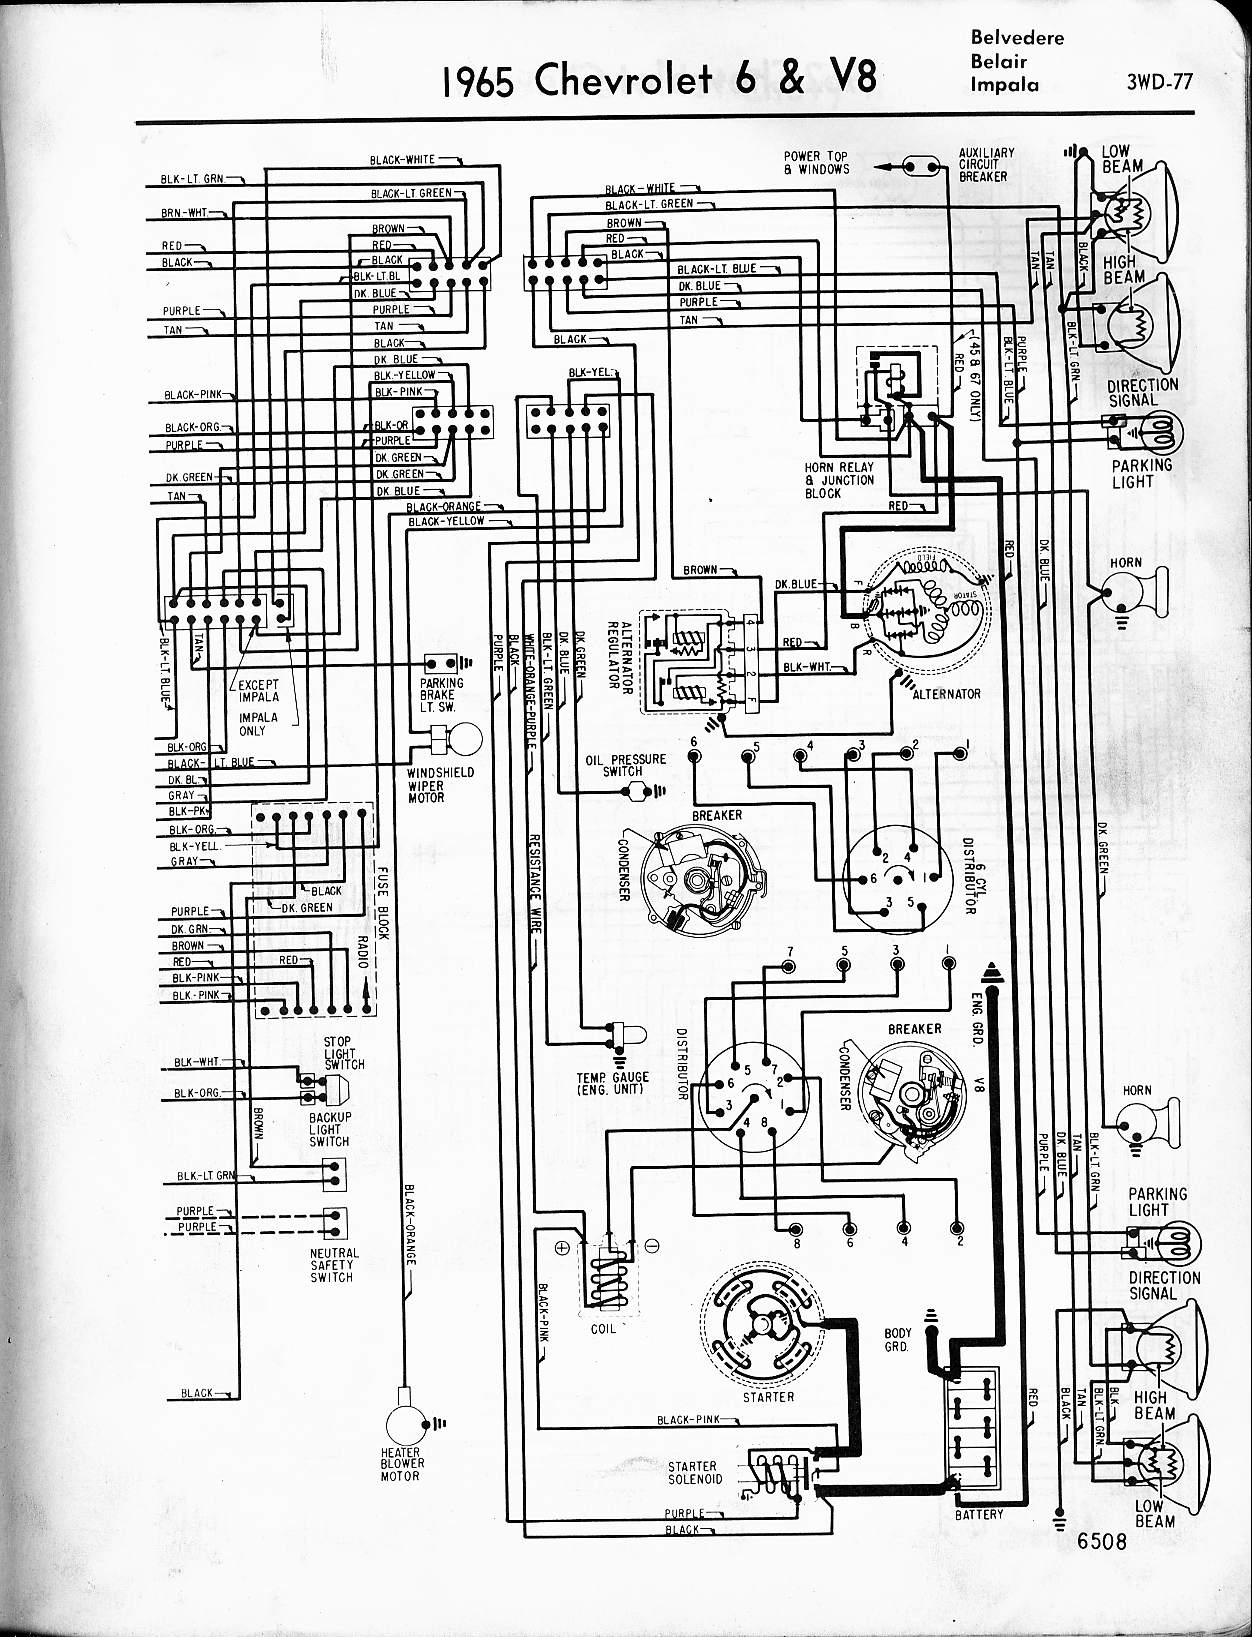 1970 Pontiac Gto Wiring Harness Diagram Library 2004 Schematic 1965 Chevelle Data Schema 68 Mustang 65